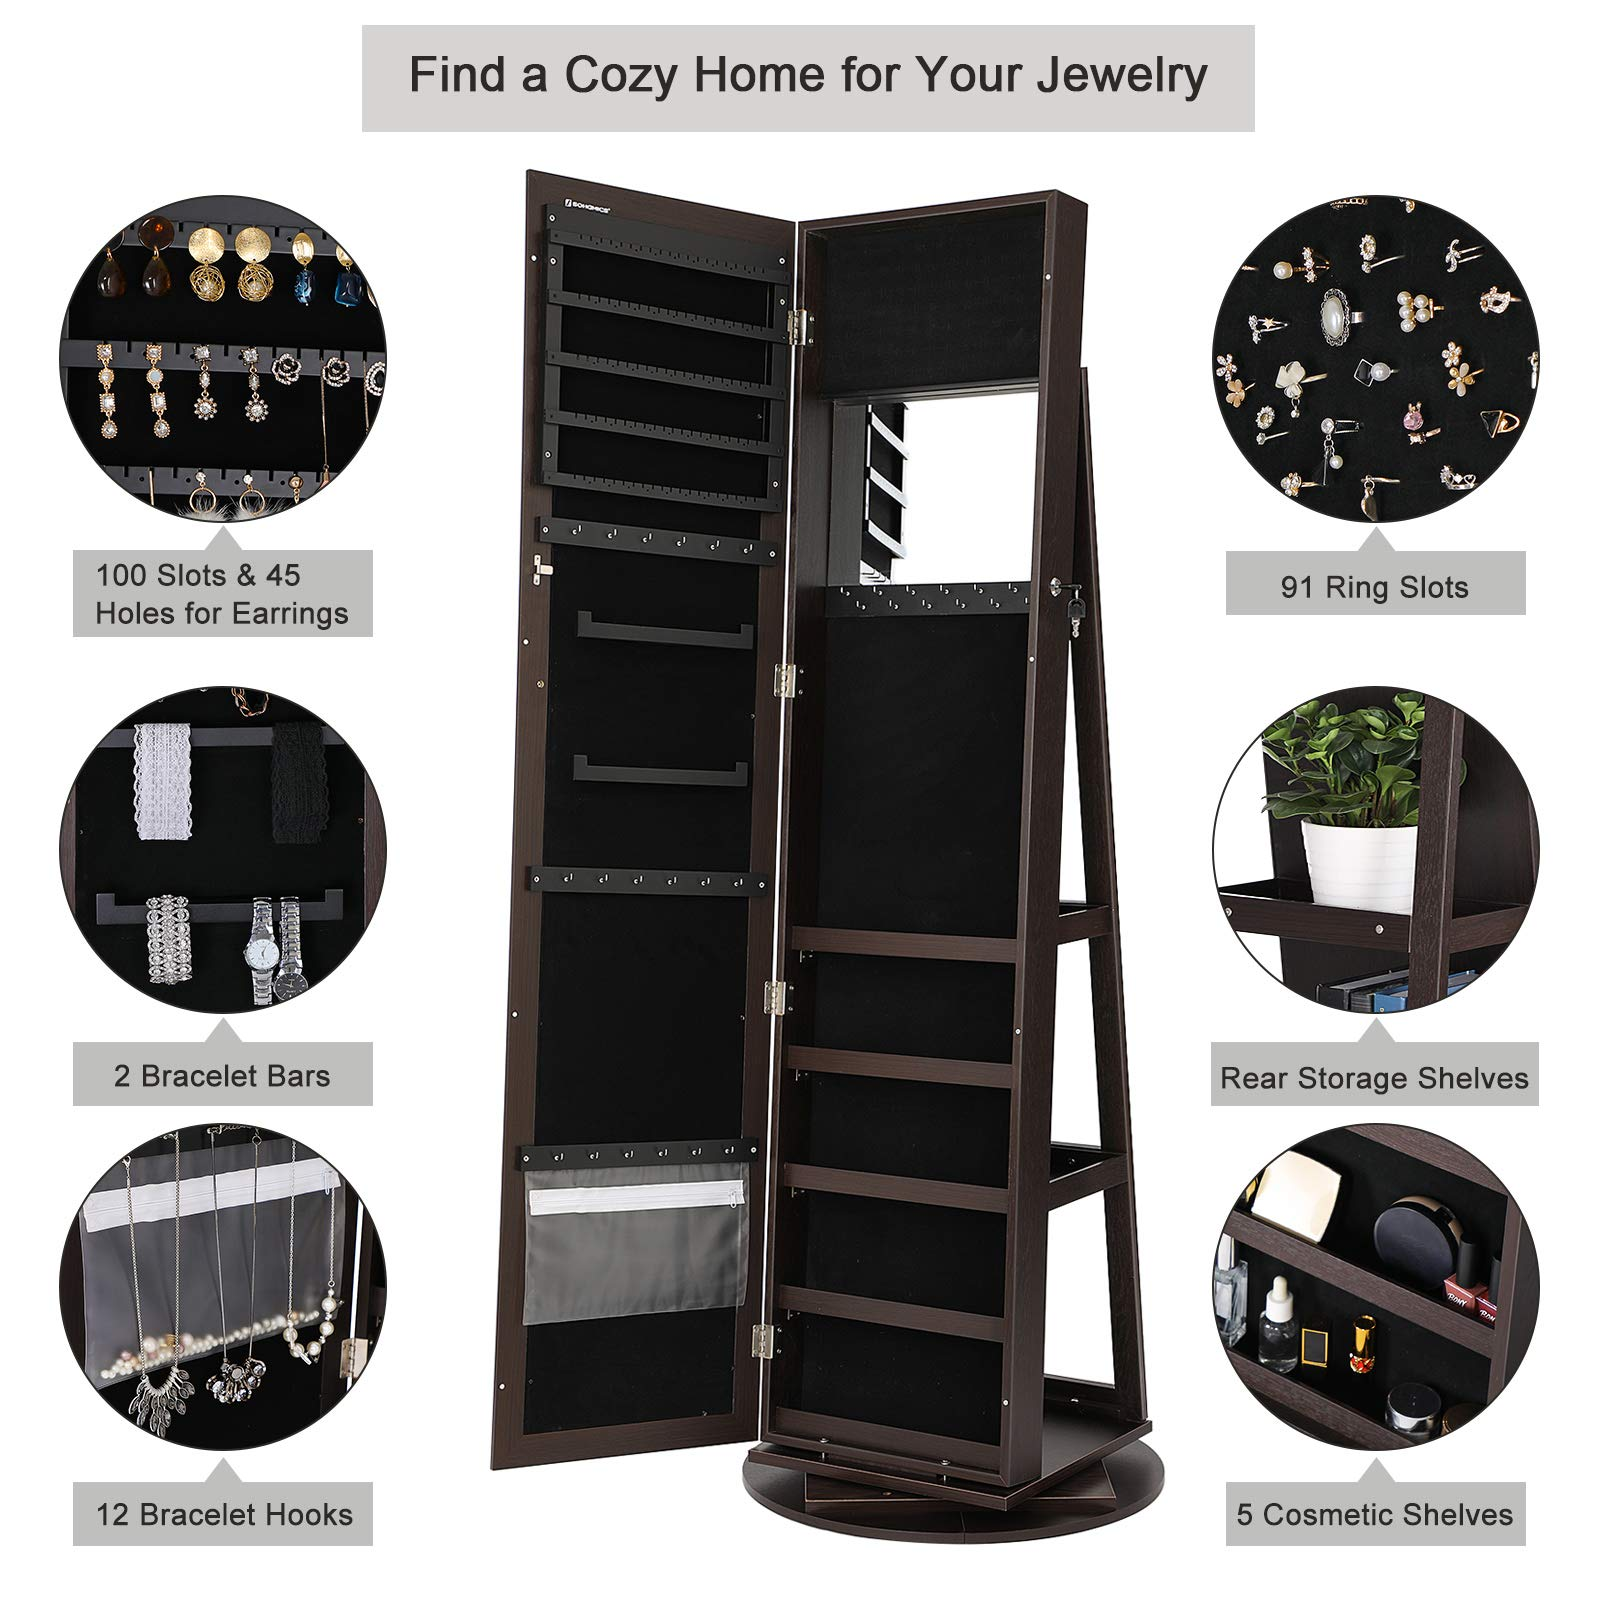 SONGMICS Jewelry Cabinet Armoire 360° Rotatable Higher Mirror, Lockable Jewelry Organizer Mother's Day Gift UJJC62BR by SONGMICS (Image #3)